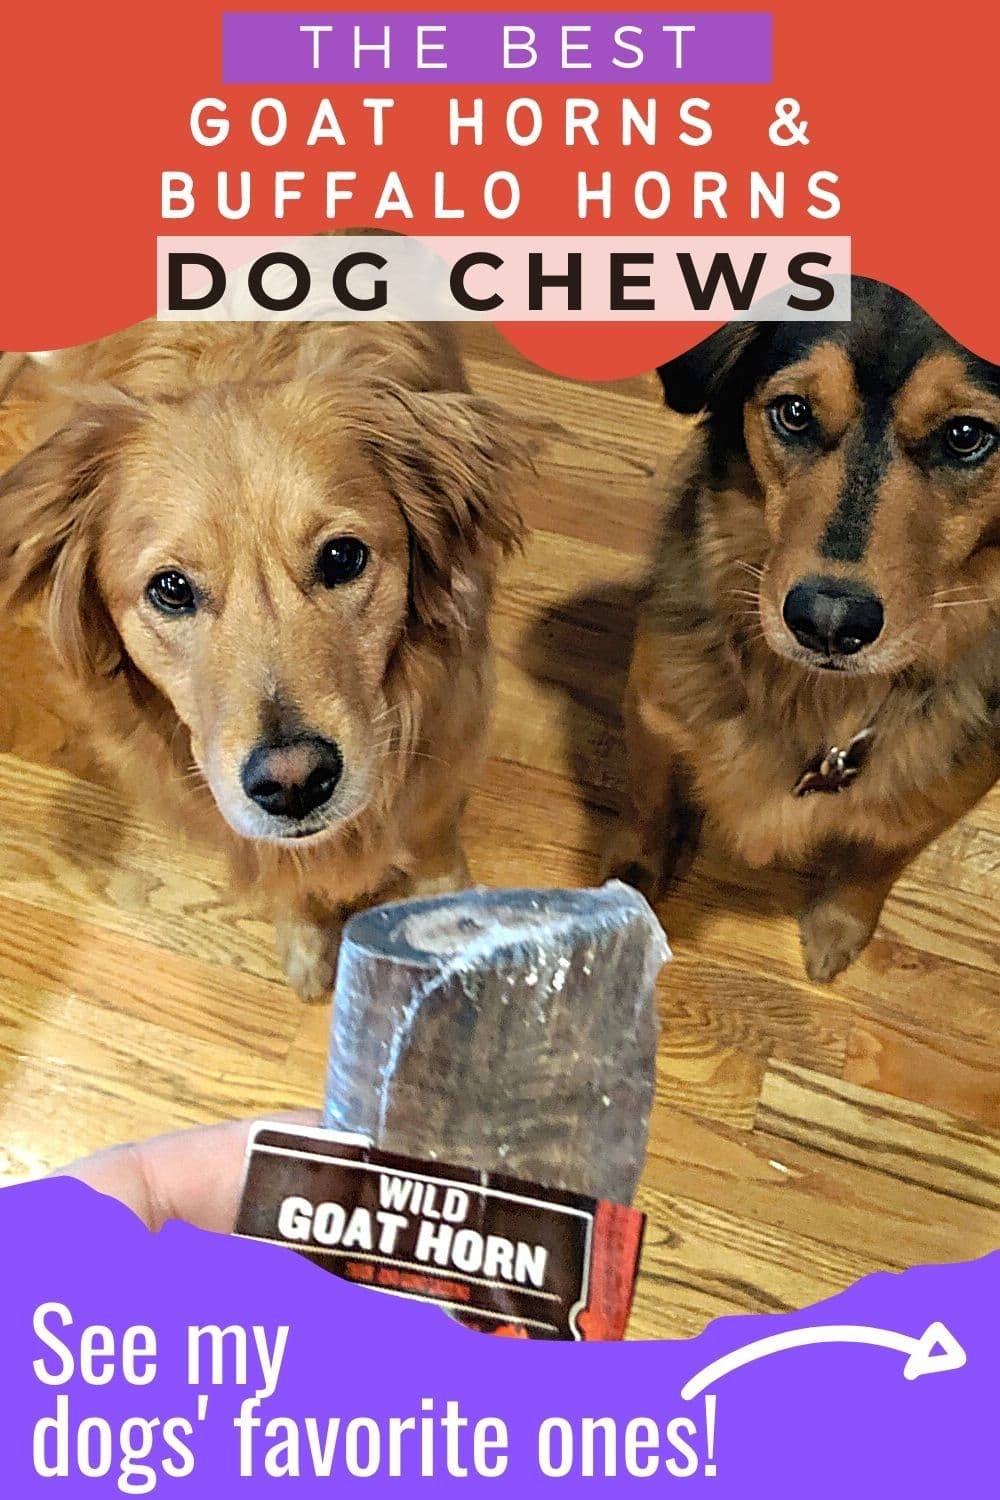 Horns For Dogs To Chew On: Our Favorite Brands + What You Need To Know Before Giving Your Dog Goat Horns & Buffalo Horns!